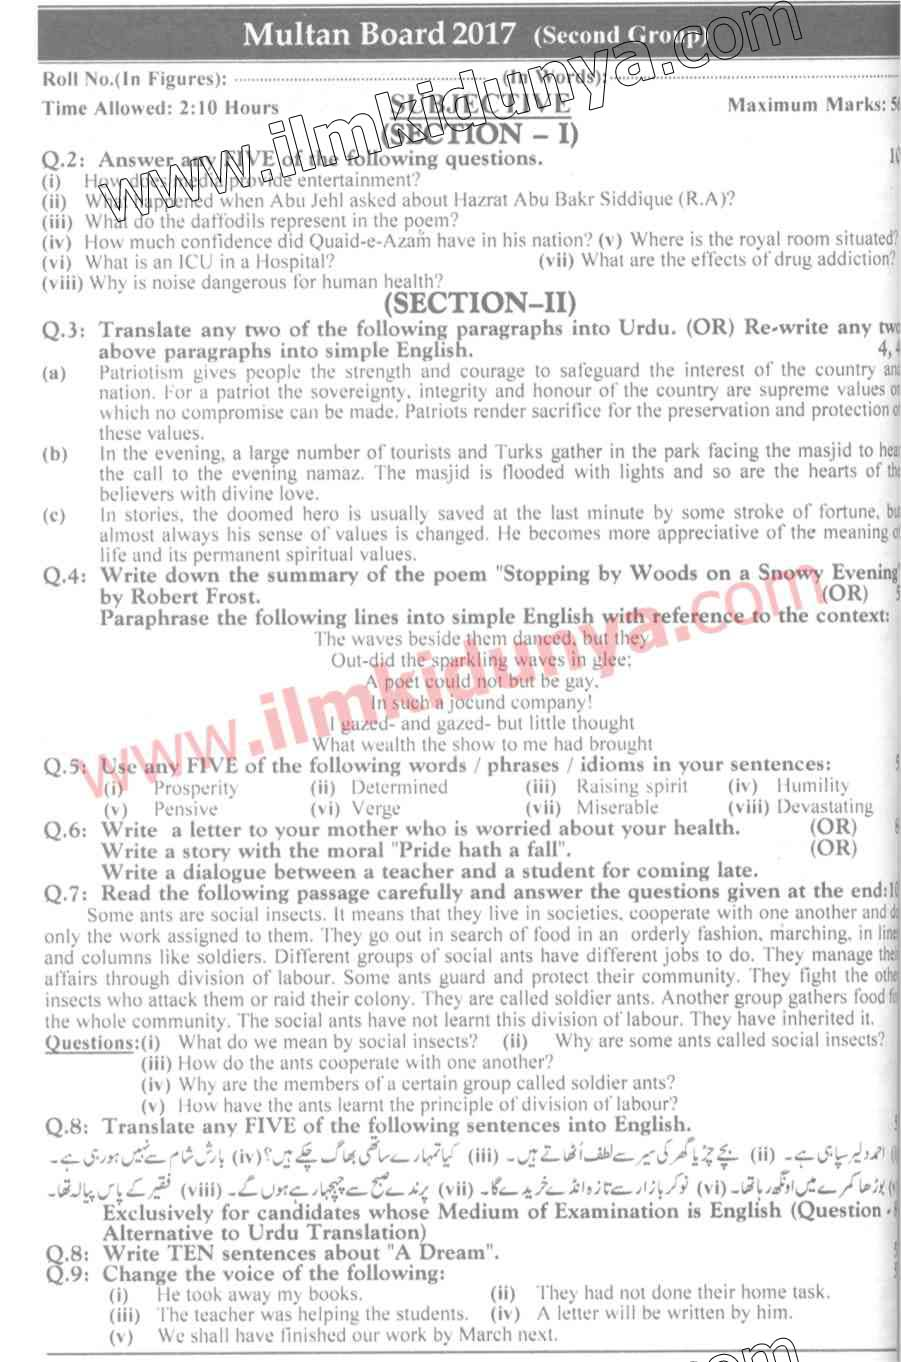 Past Papers 2017 Multan Board 9th Class English Group 2 Subjective